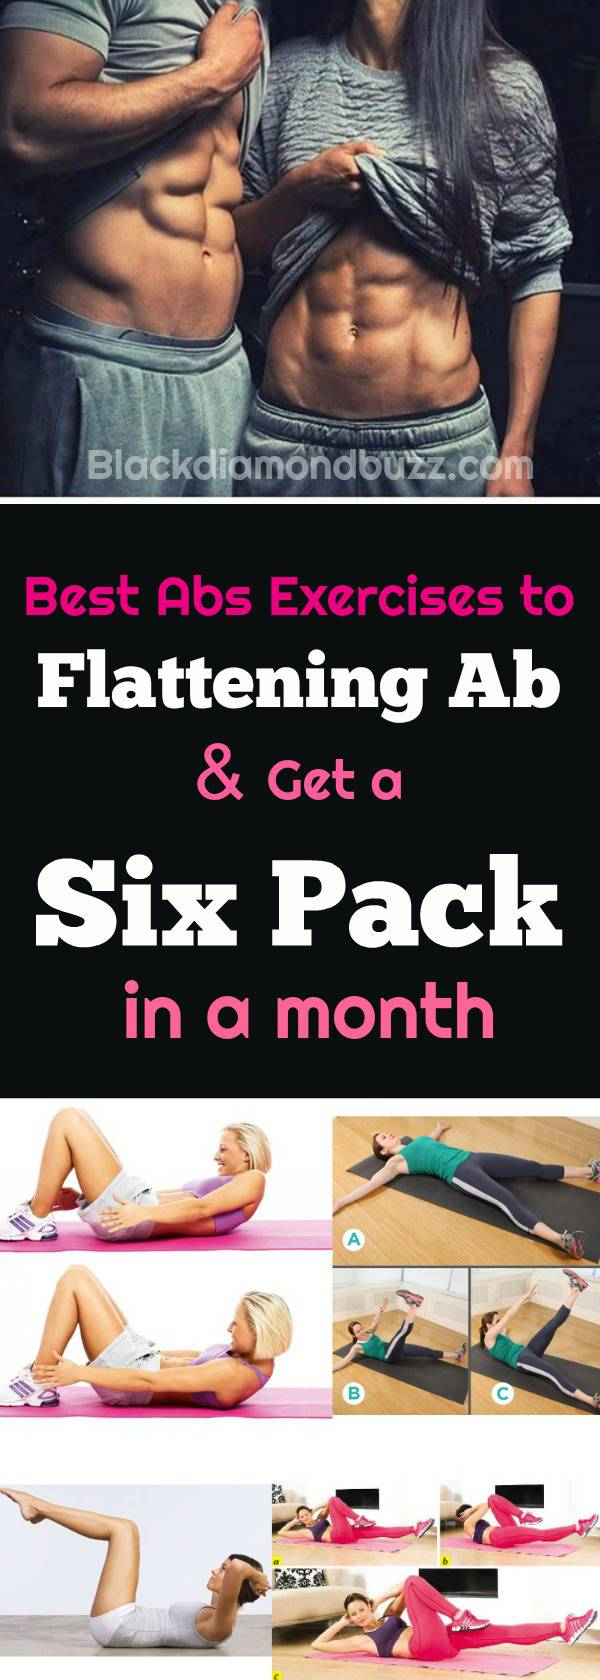 7 Best Abs Exercises to Get a Six Pack Ab in a Month